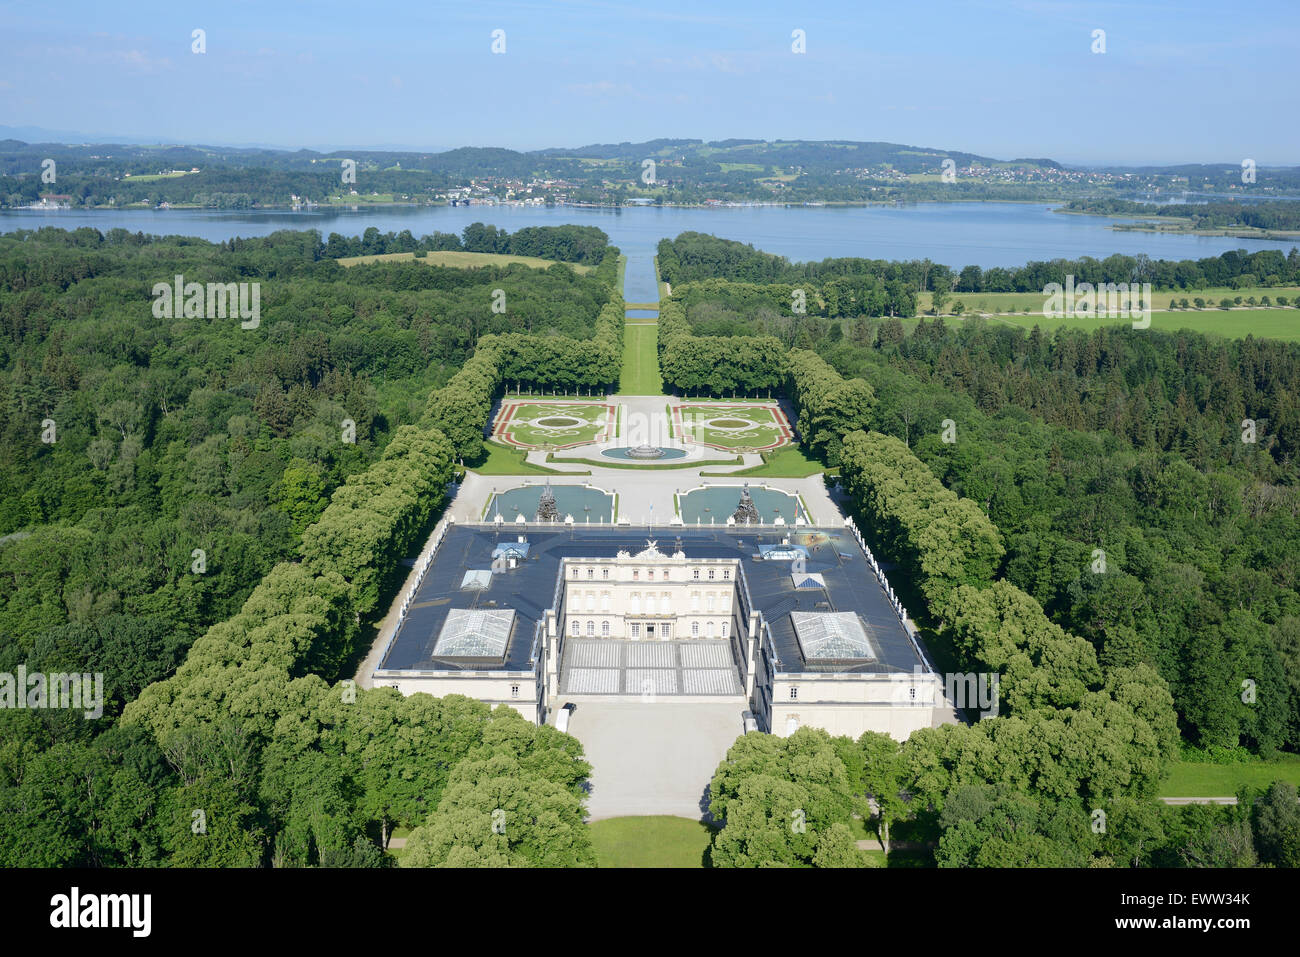 HERRENCHIEMSEE PALACE (aerial view from the east). Herreninsel Island, Chiemsee Lake, Bavaria, Germany. - Stock Image